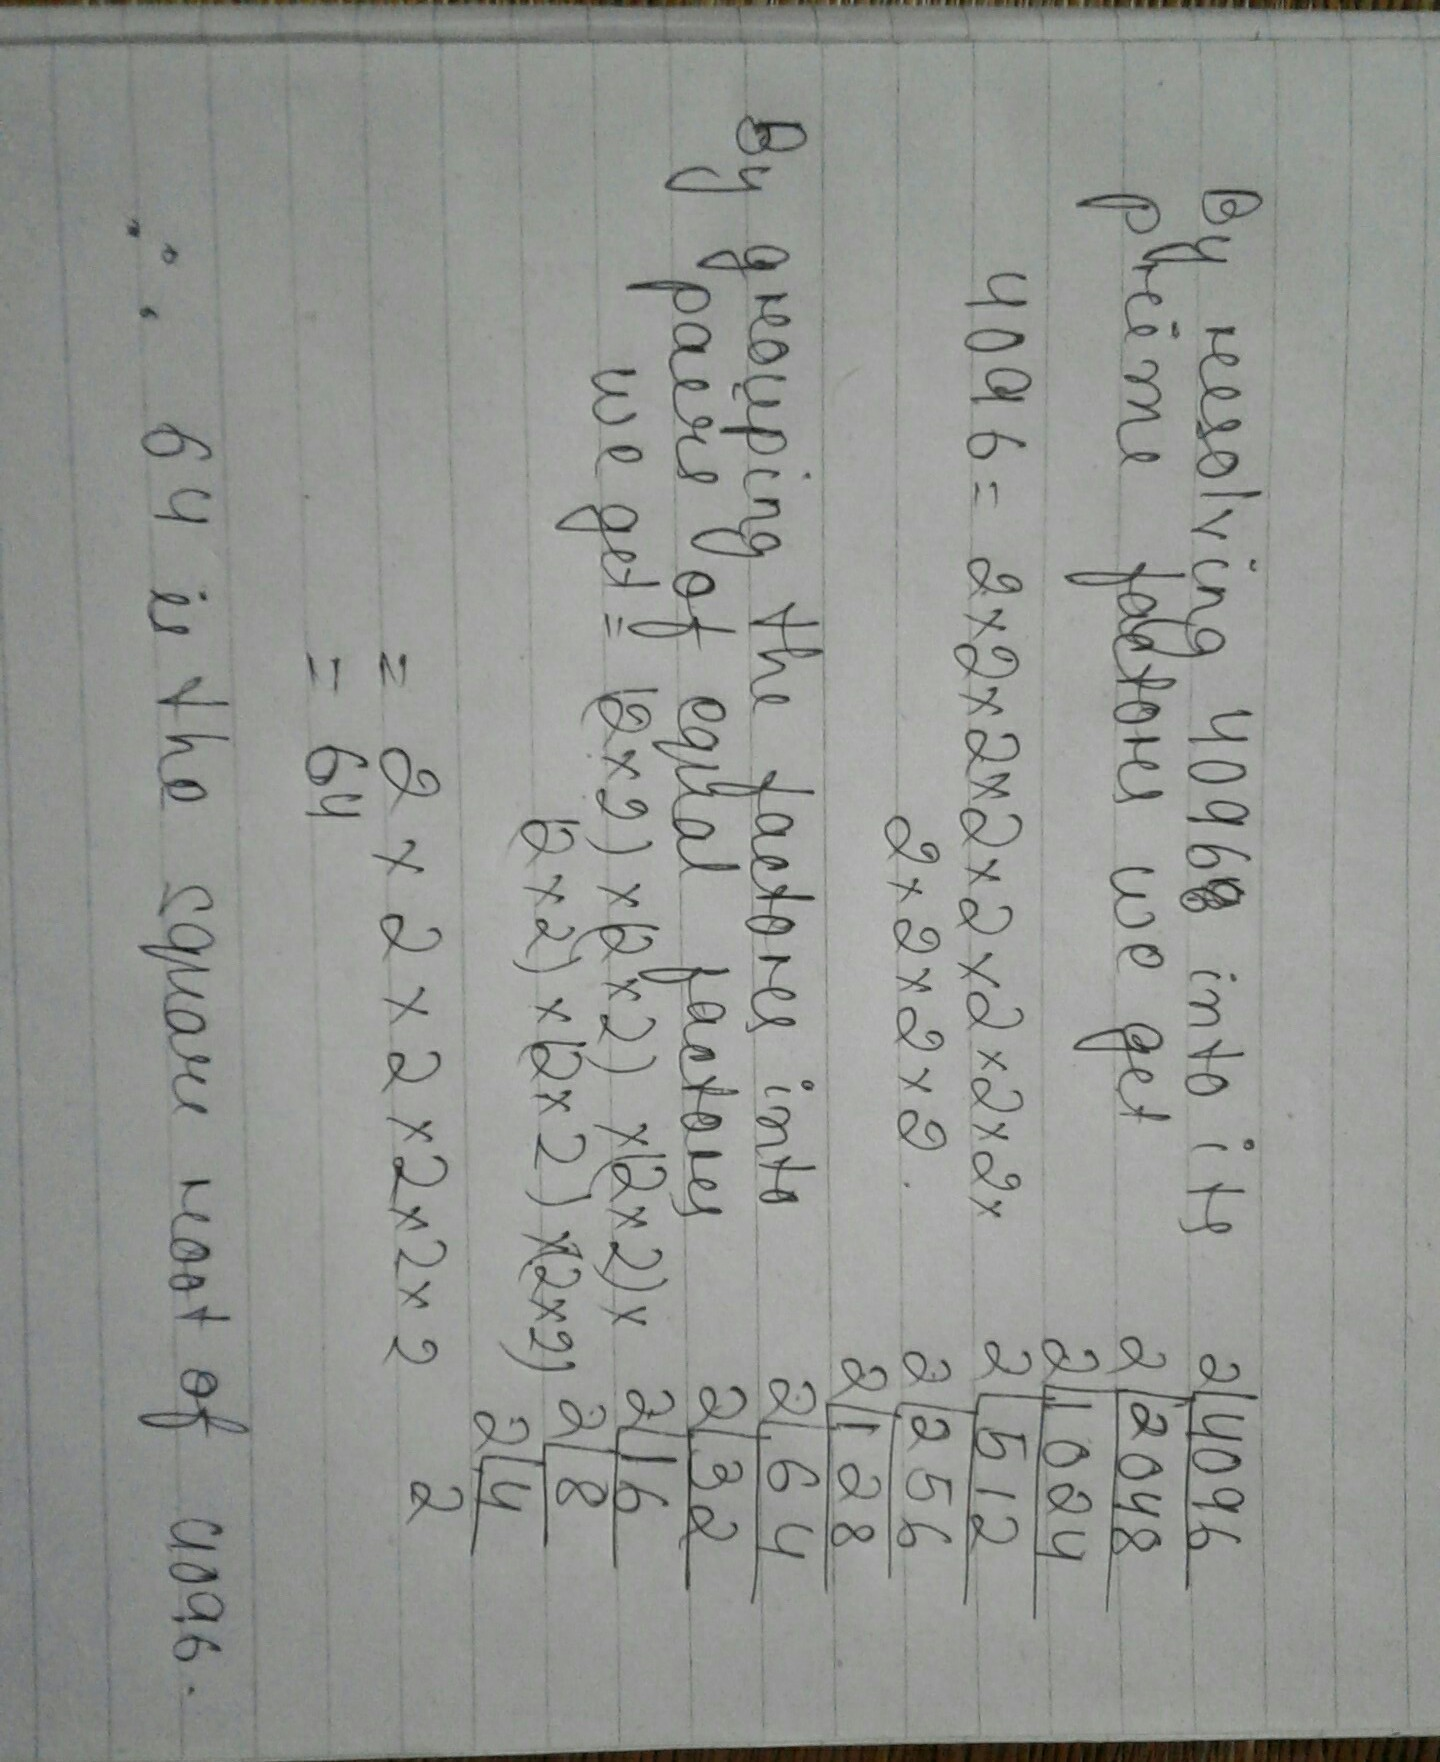 20 squre root full solve fast   Brainly.in